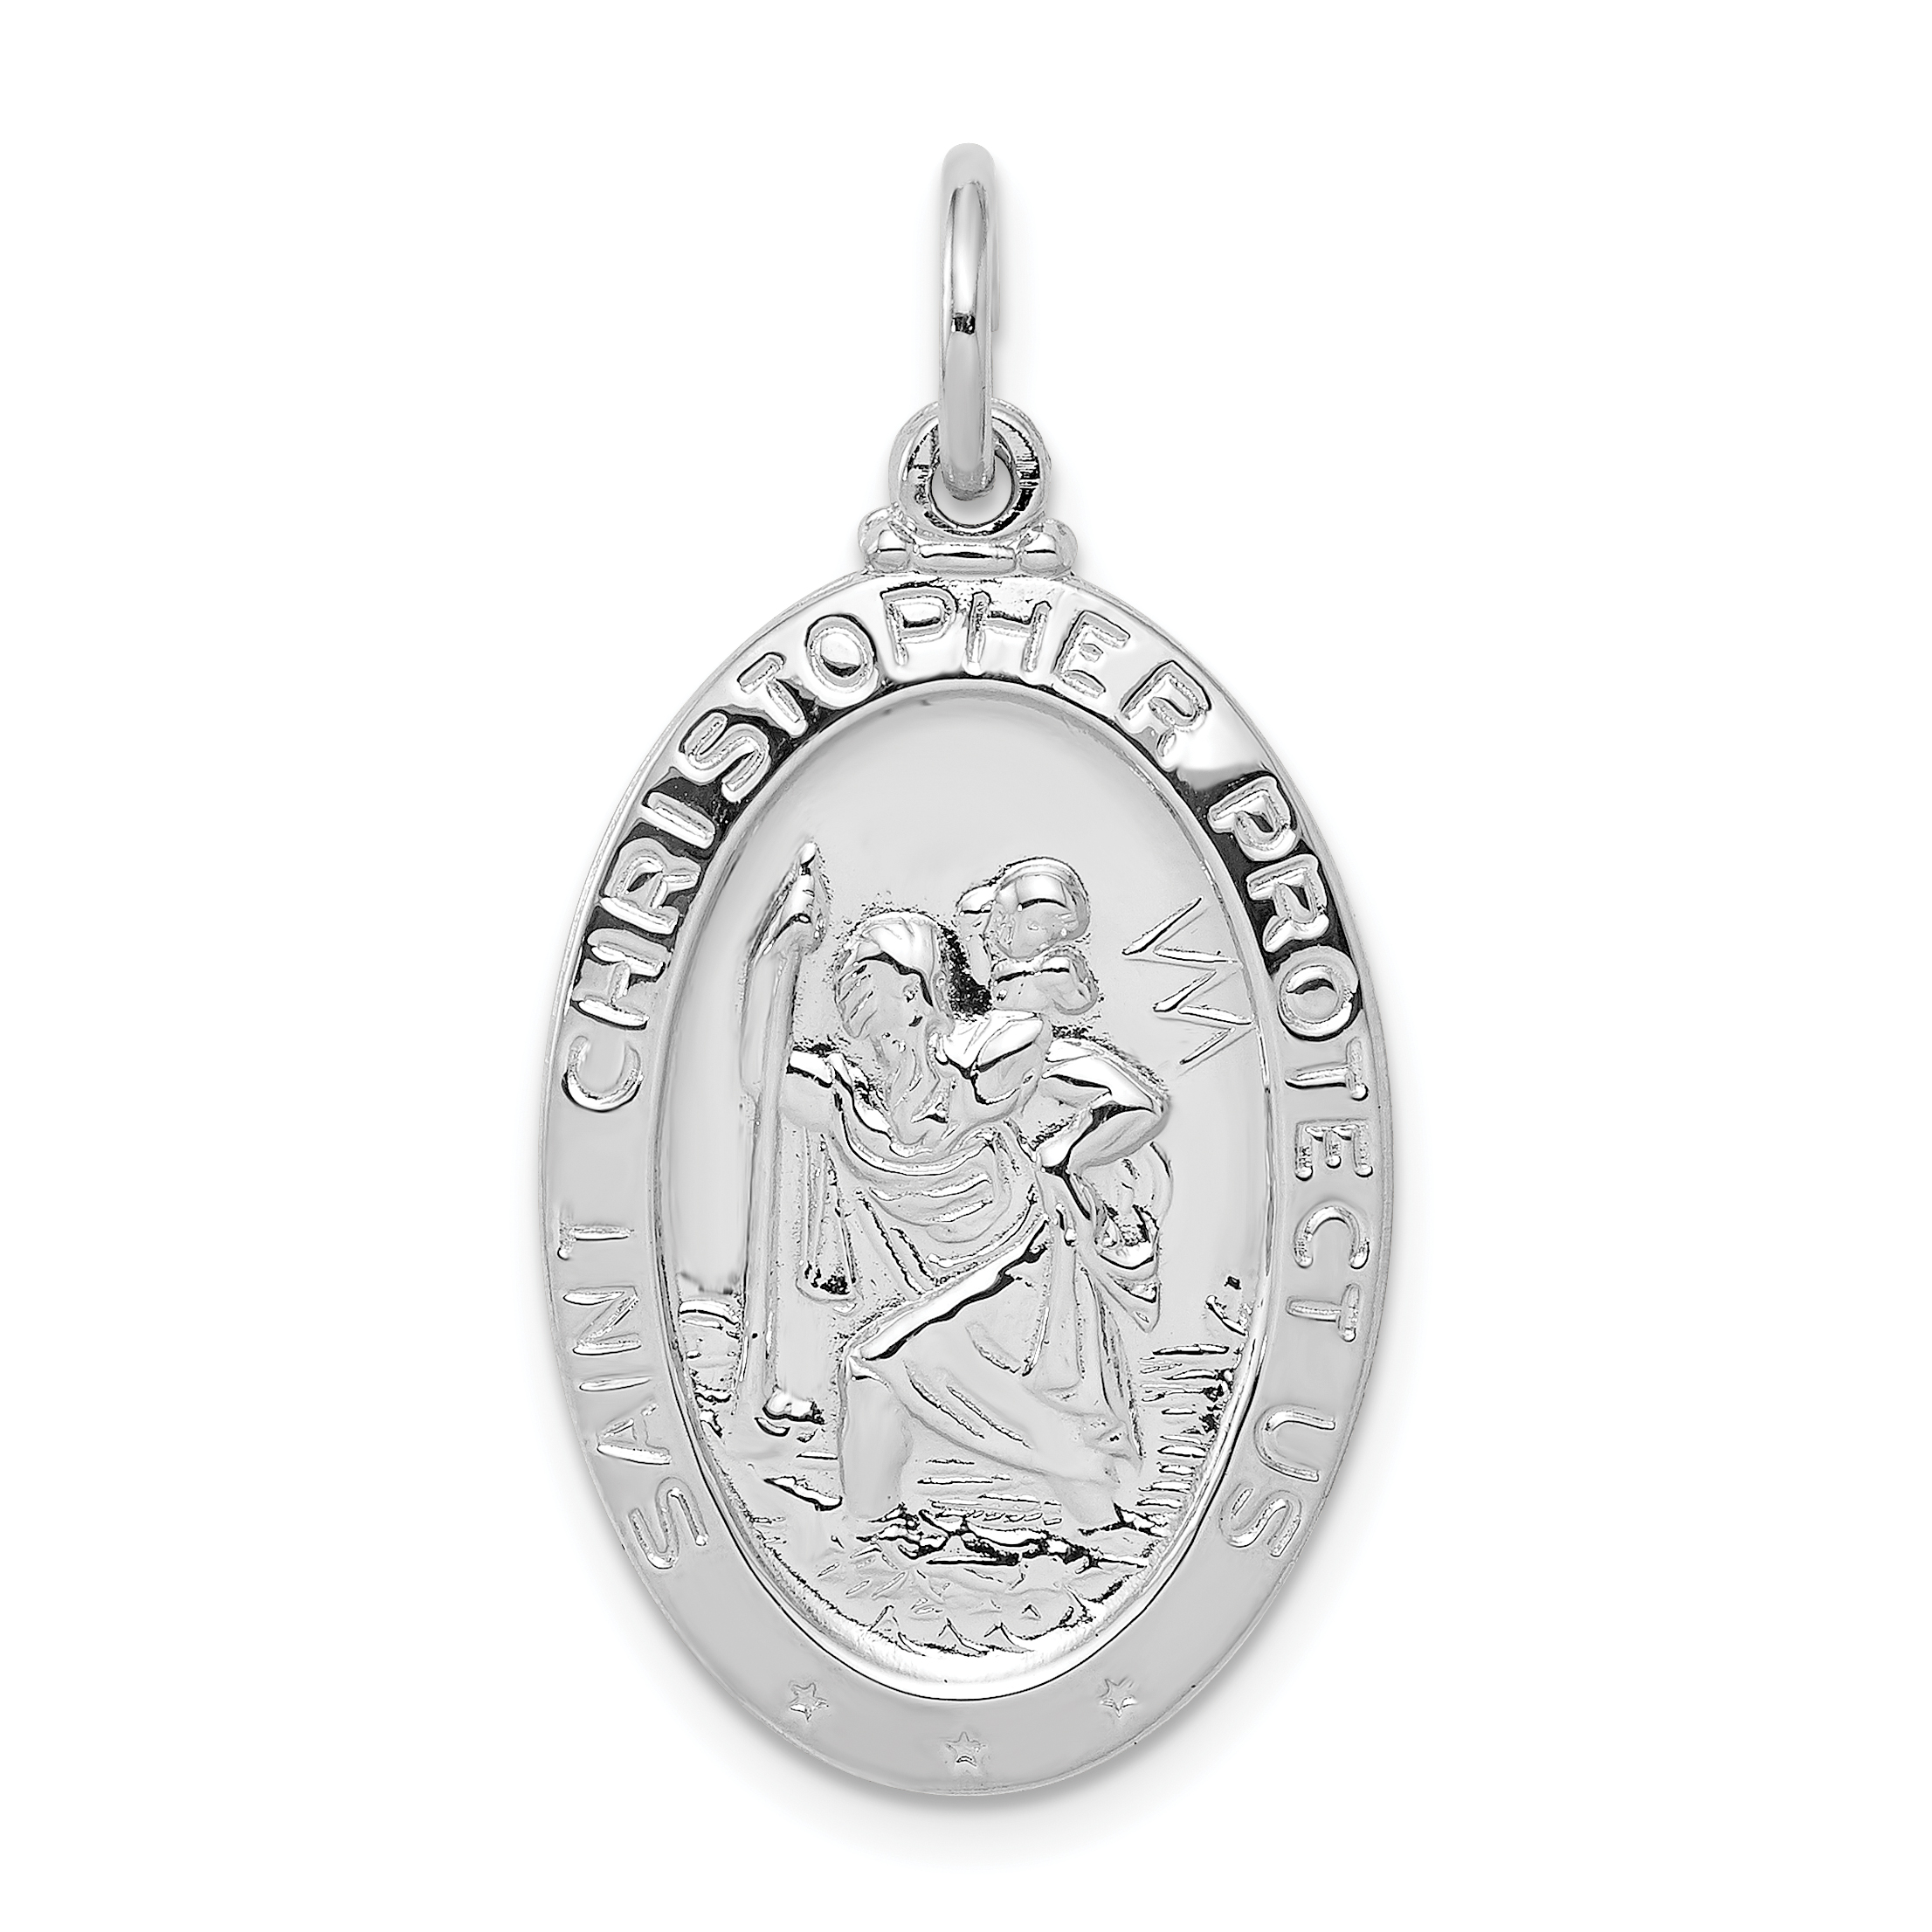 medallion saint medal designer macy gold lyst women metallic christopher s jewelry macys necklace pendant in